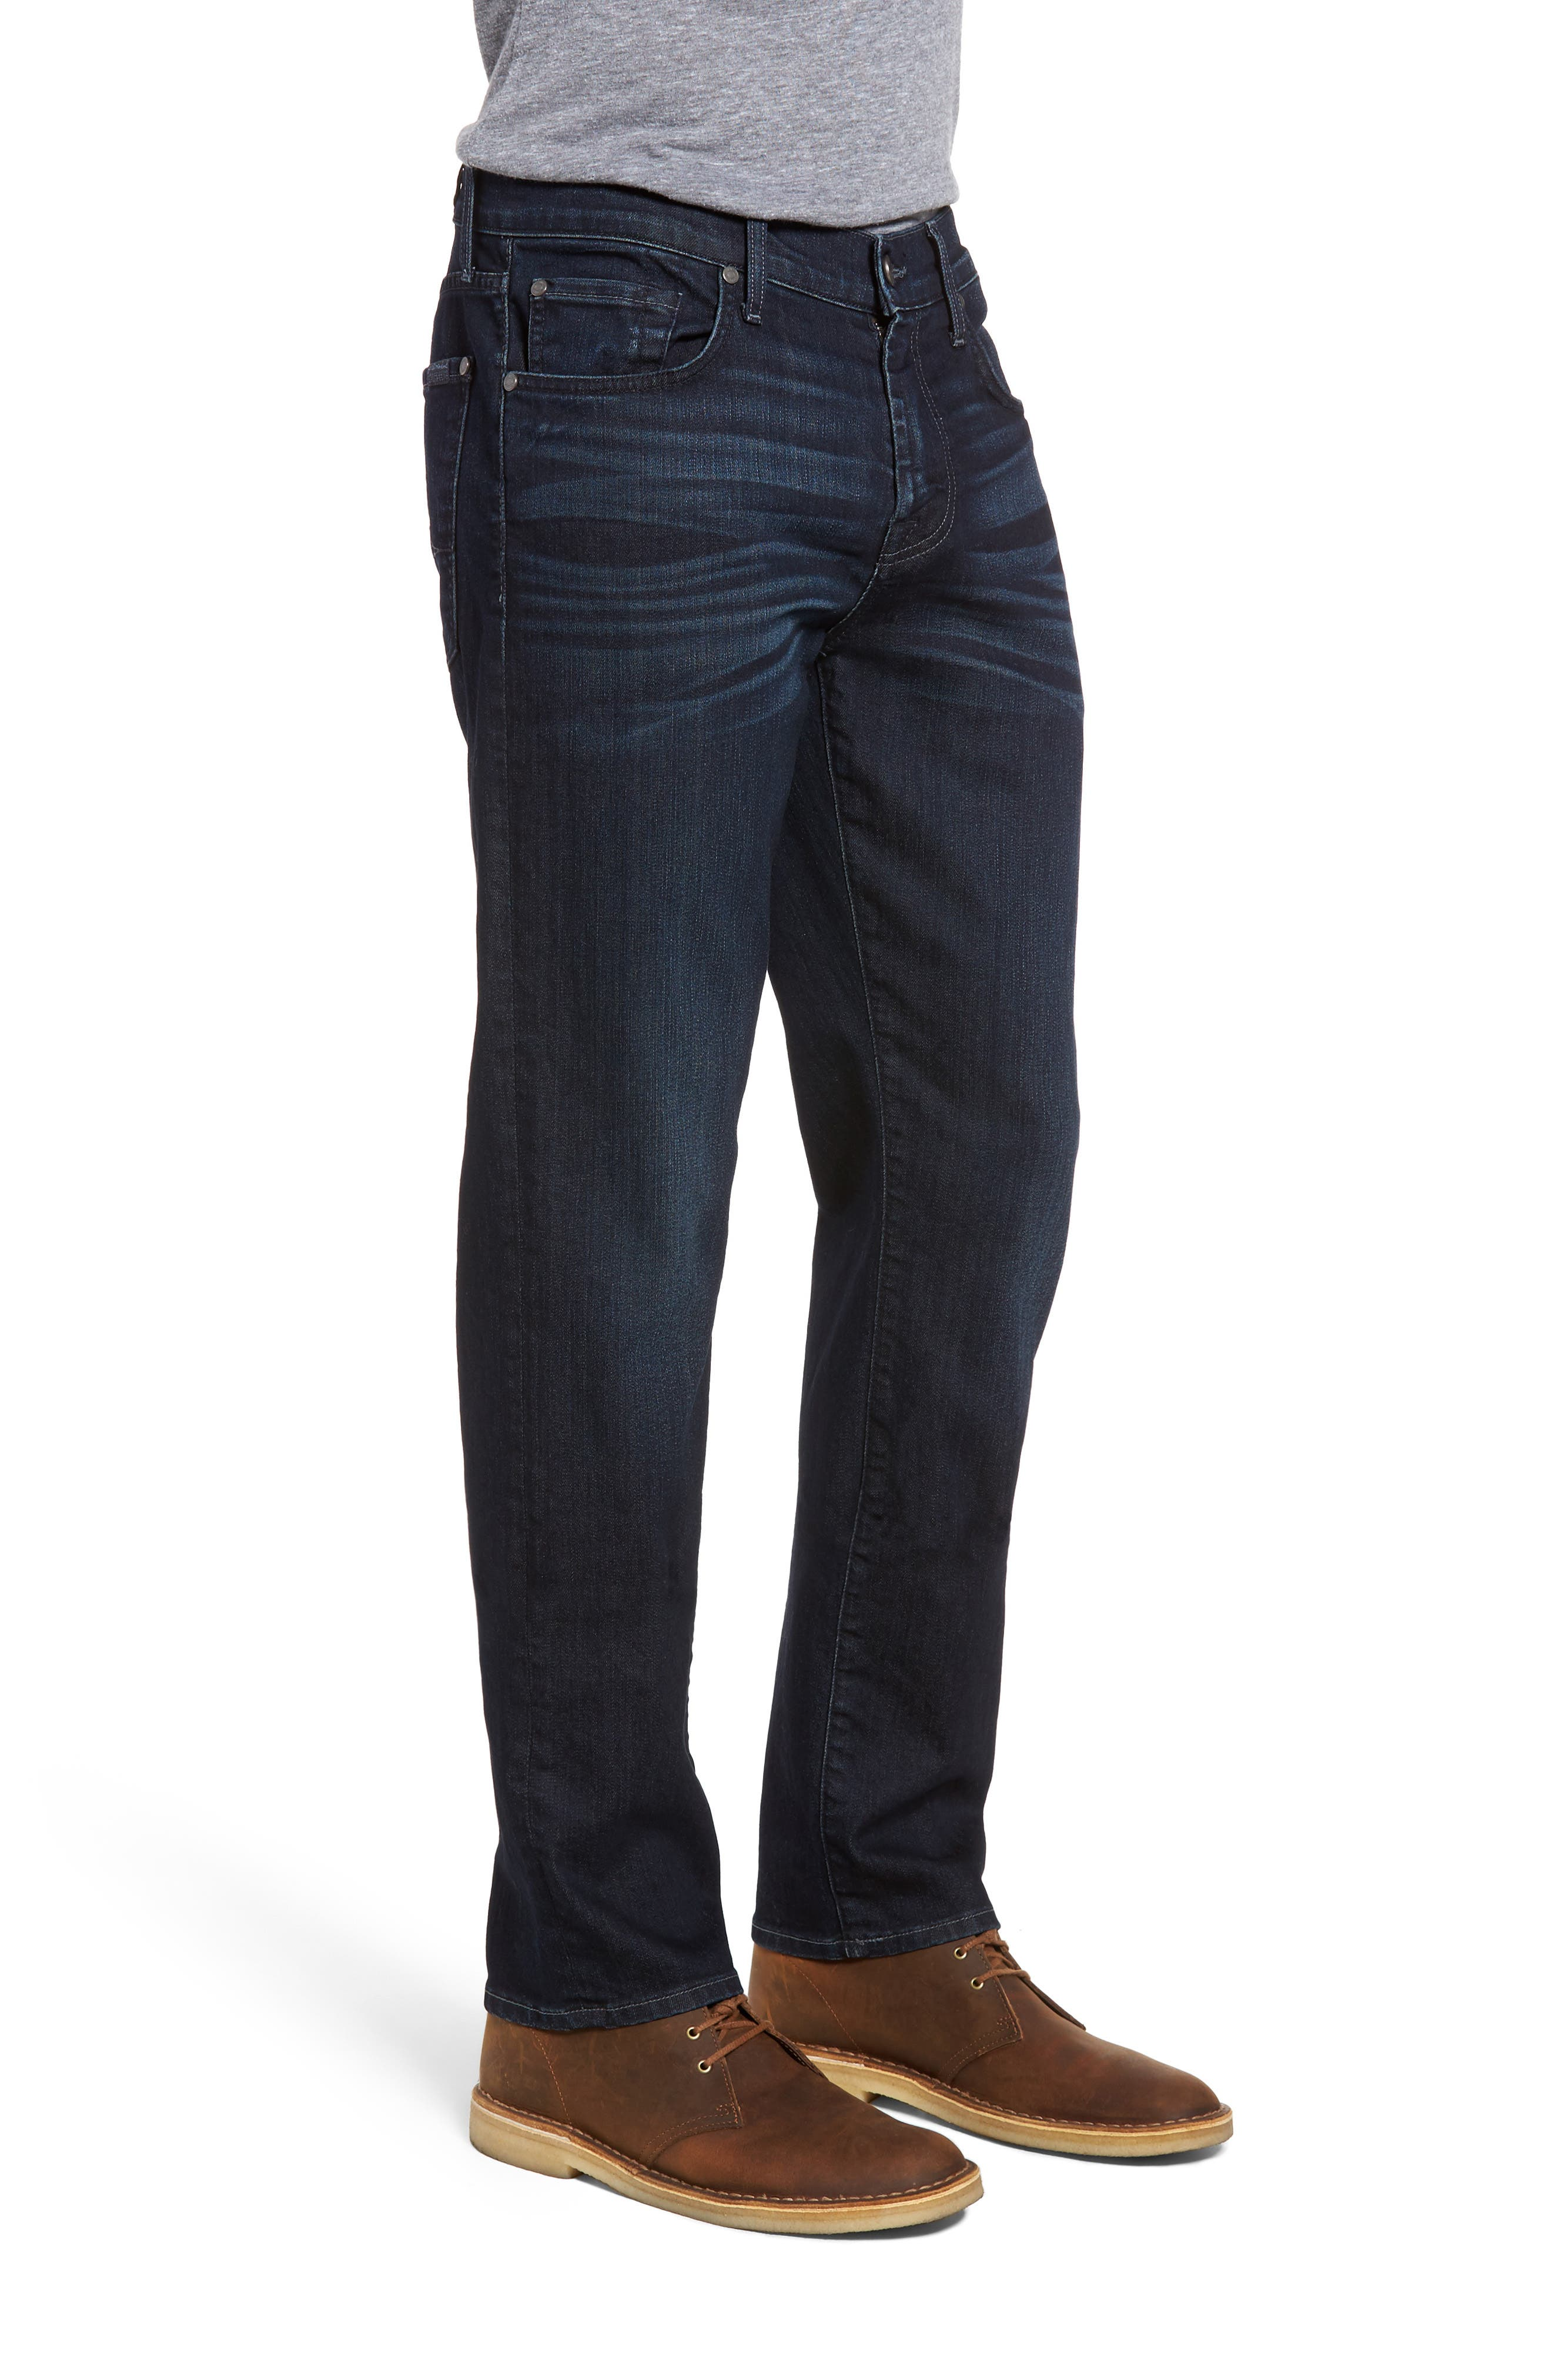 7 FOR ALL MANKIND<SUP>®</SUP>, Slimmy AirWeft Slim Fit Jeans, Alternate thumbnail 3, color, PERENNIAL